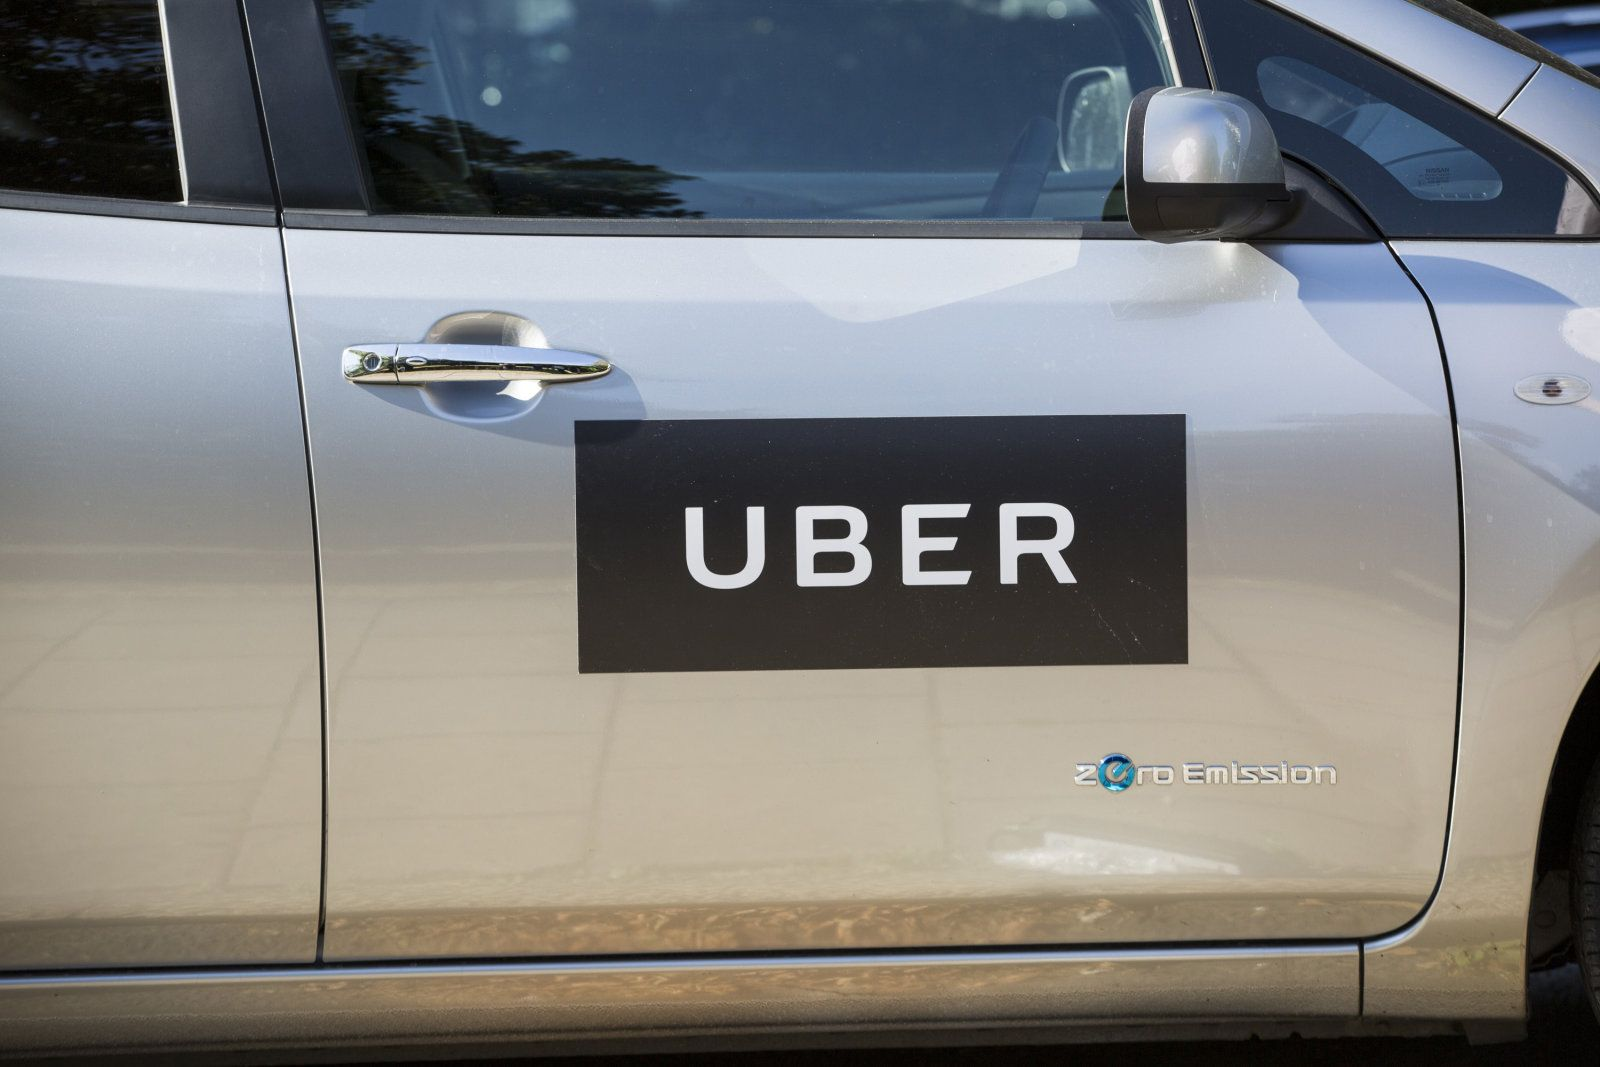 Uber might have to pay £2 million to operate in London